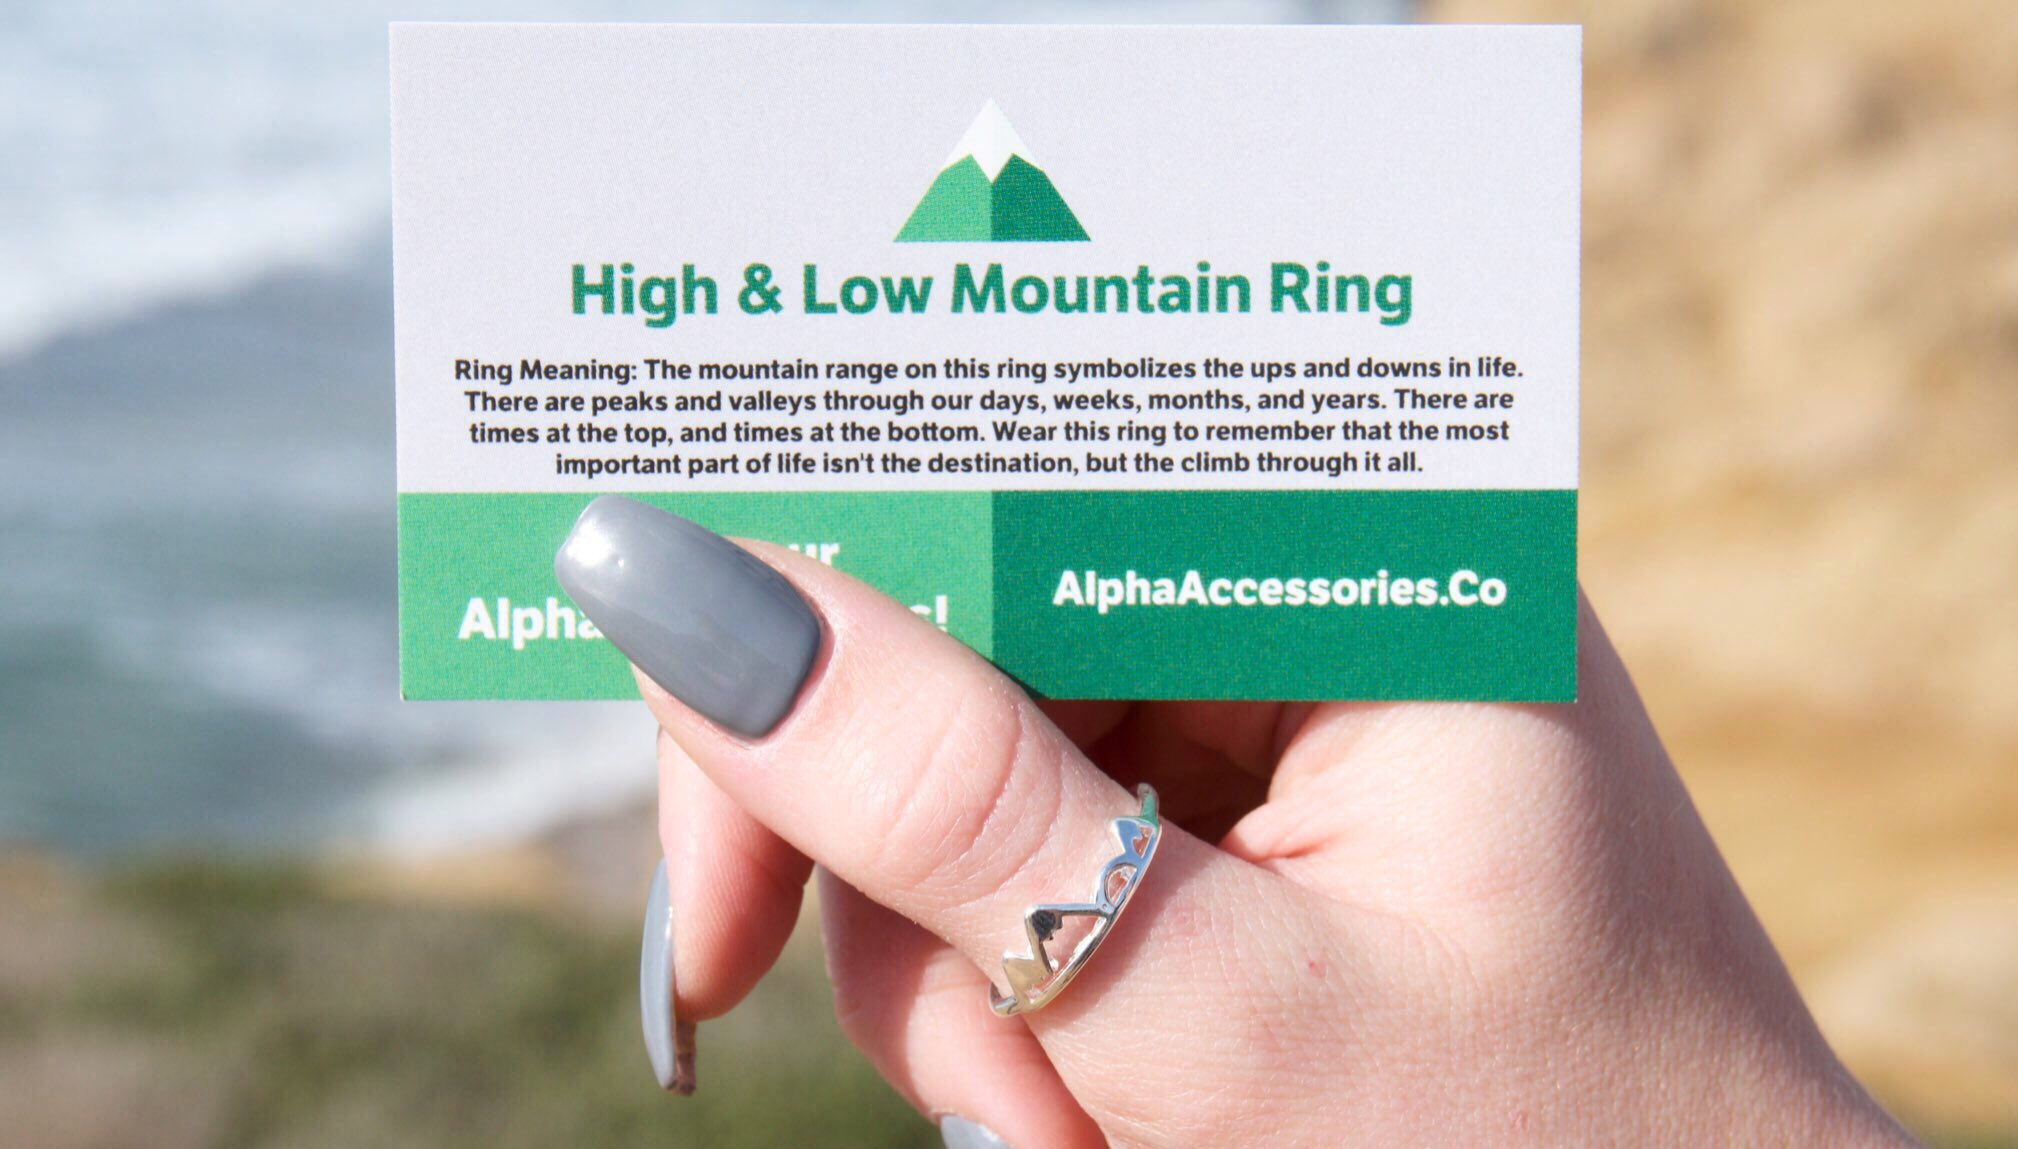 RT @BEFlTMOTlVATION: Neeed this high & low mountain ring from https://t.co/6QN7pgspDQ https://t.co/LiMFPfLEKY